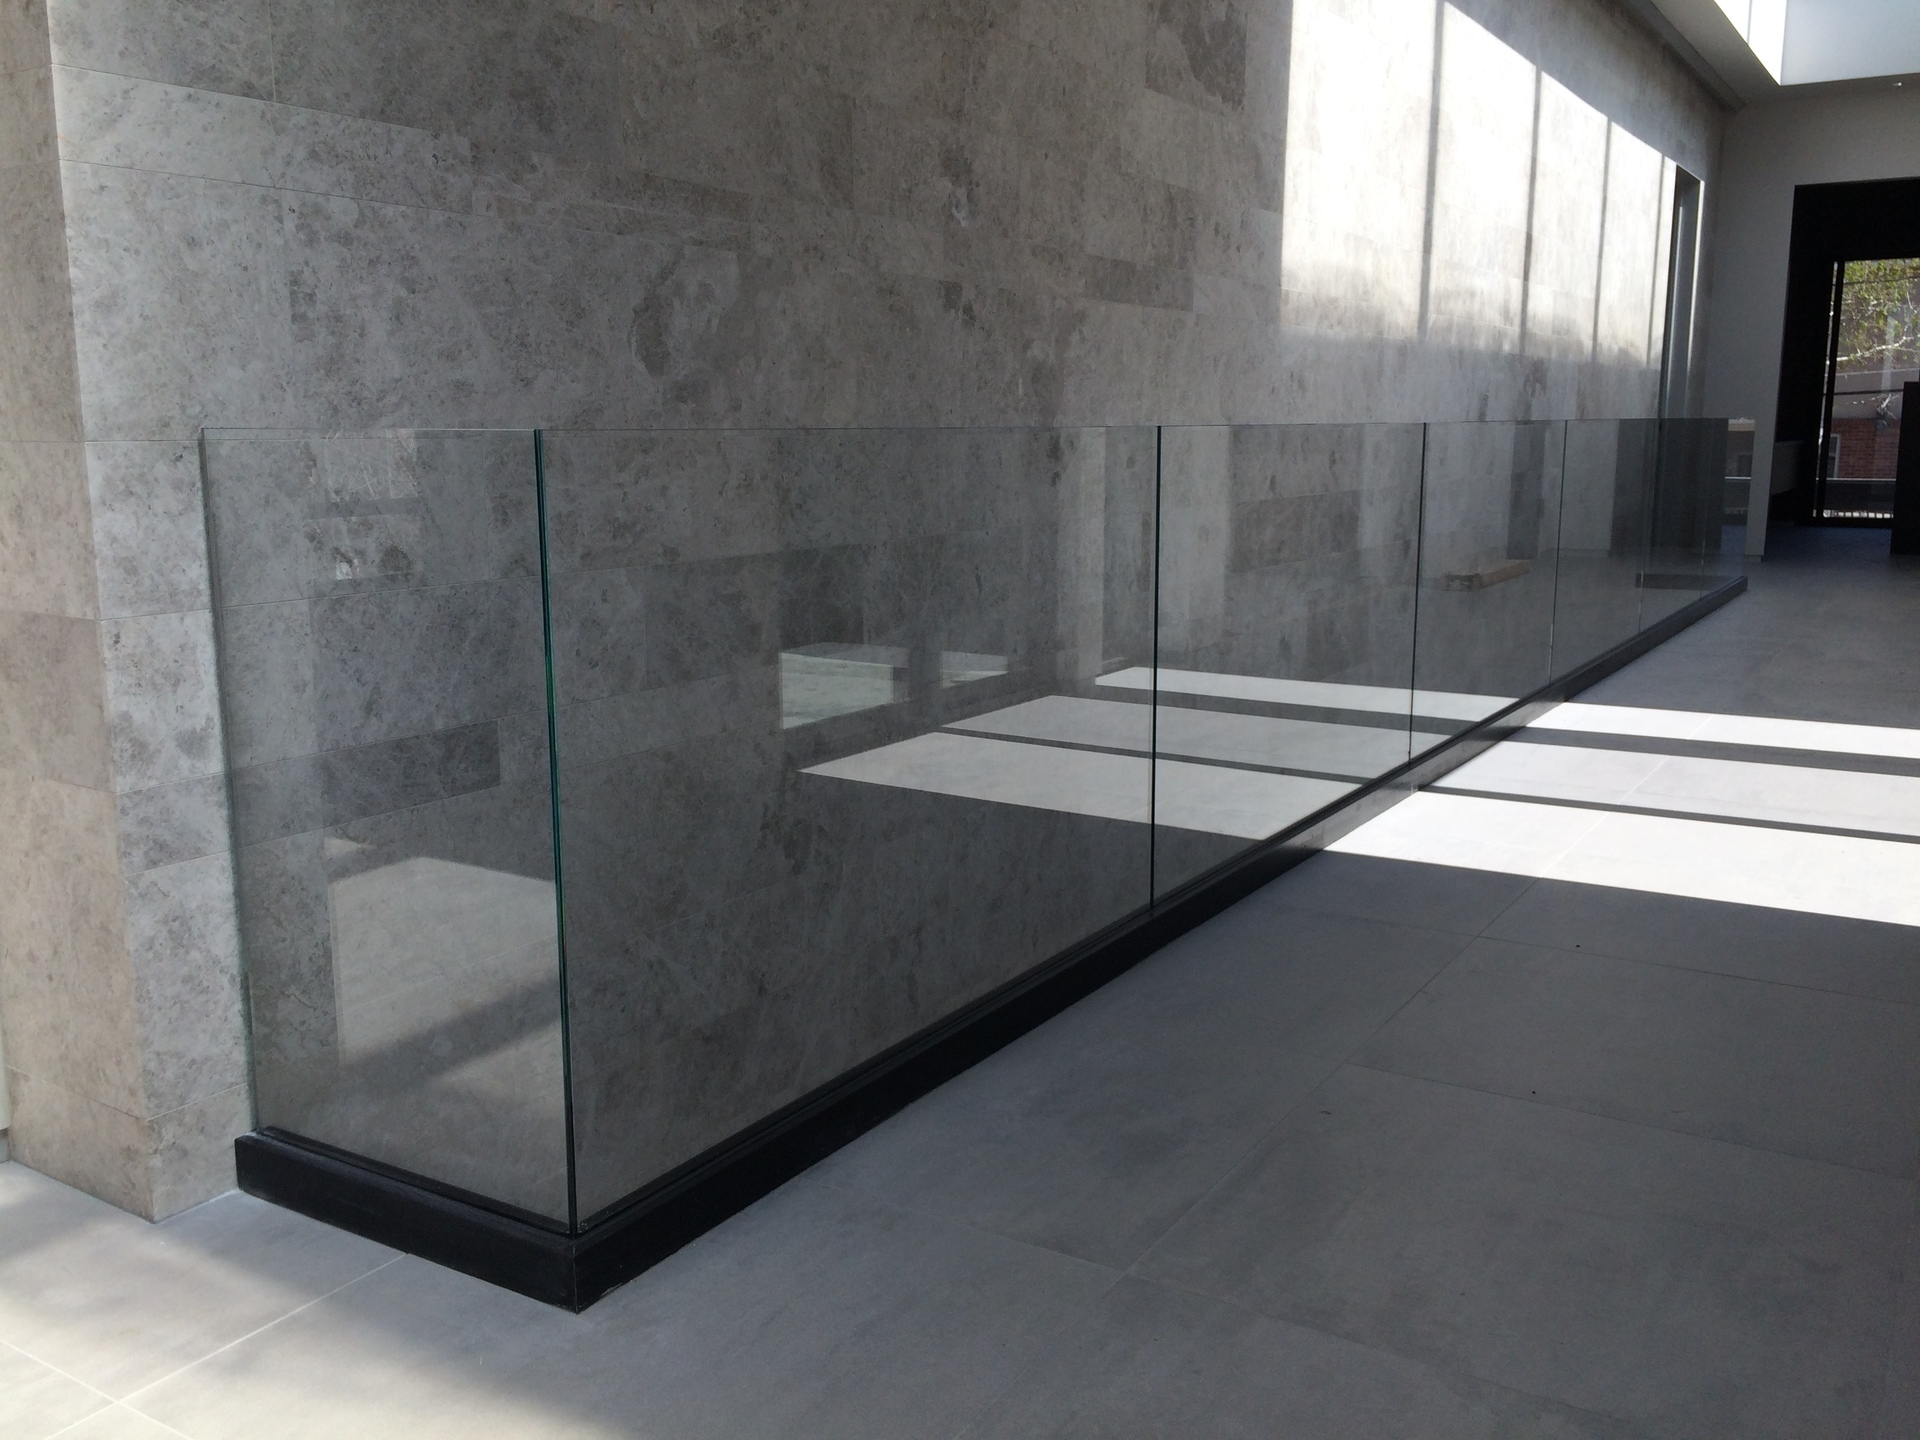 Denver Glass Interiors fabricated, measured, and installed this custom fabricated glass railings.